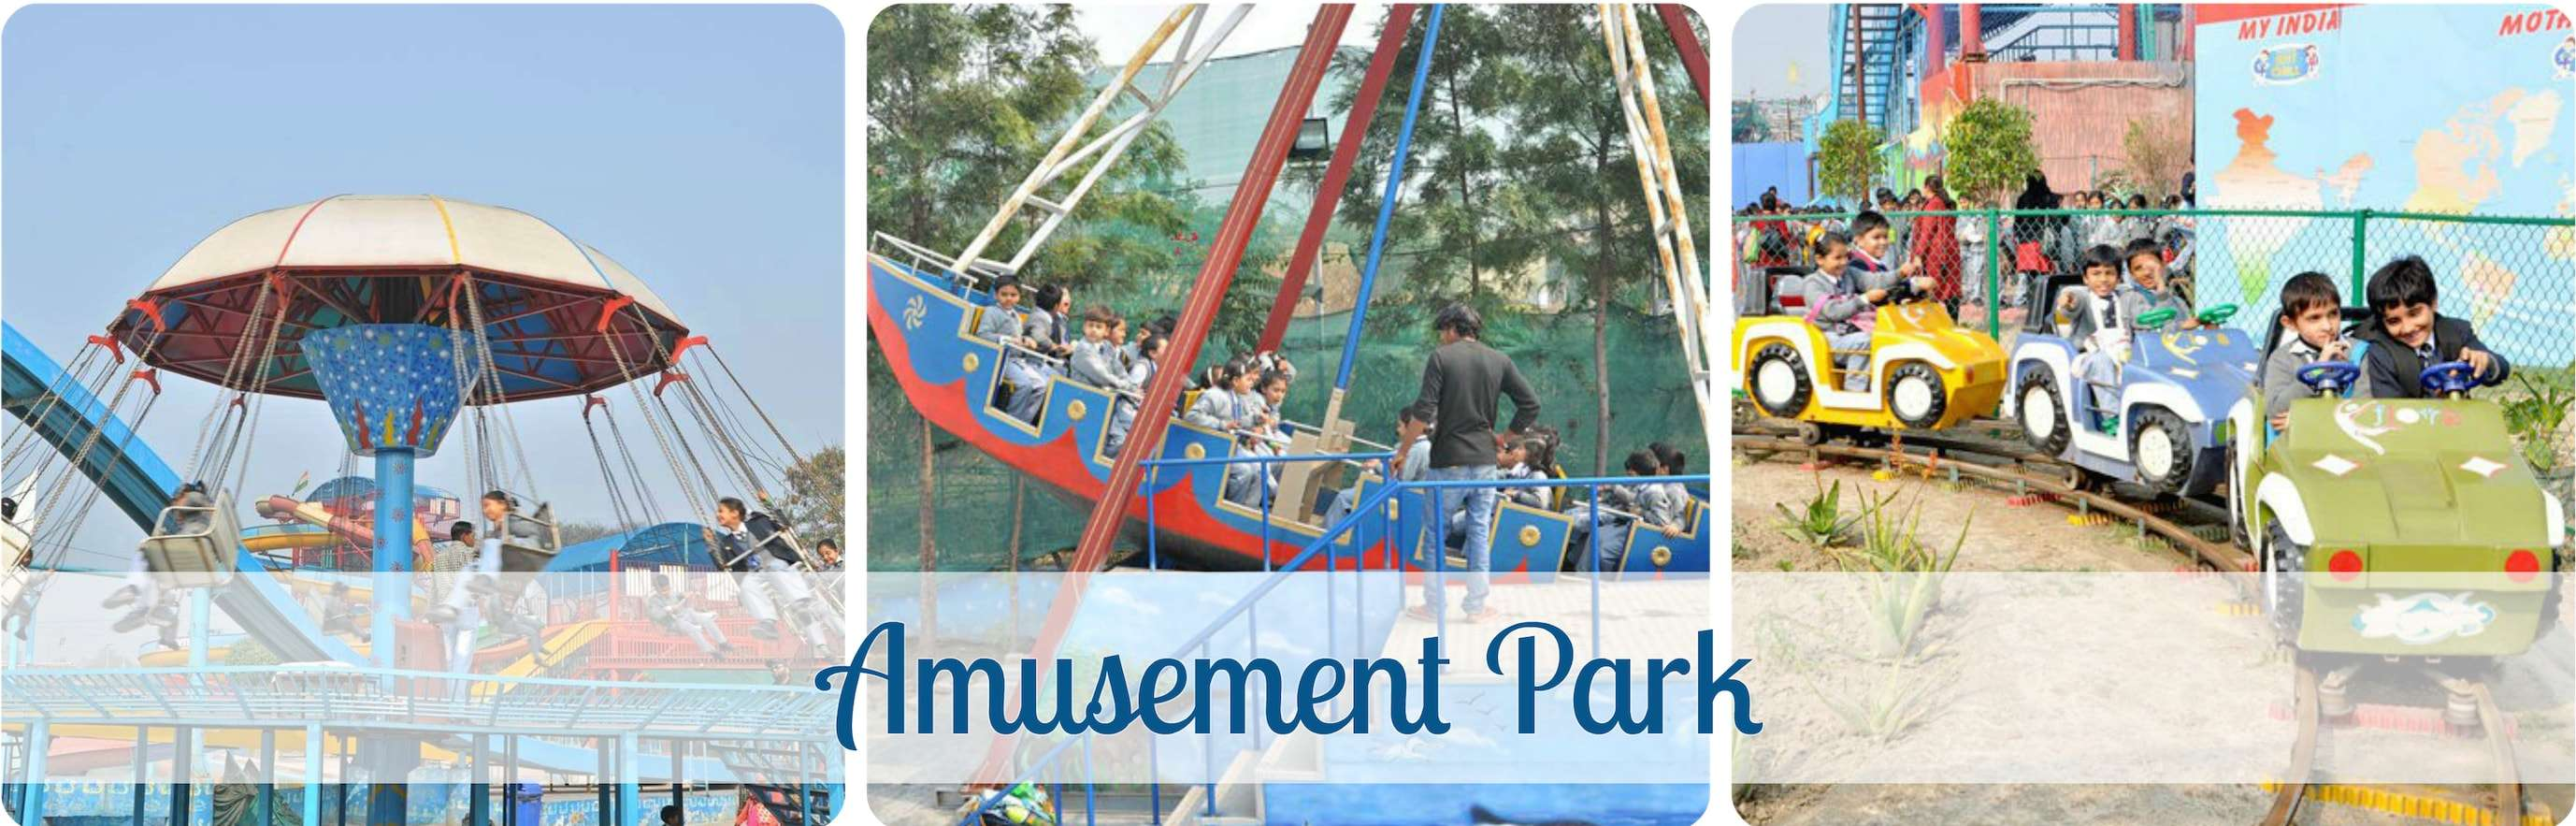 Amusement Park just chill.jpg